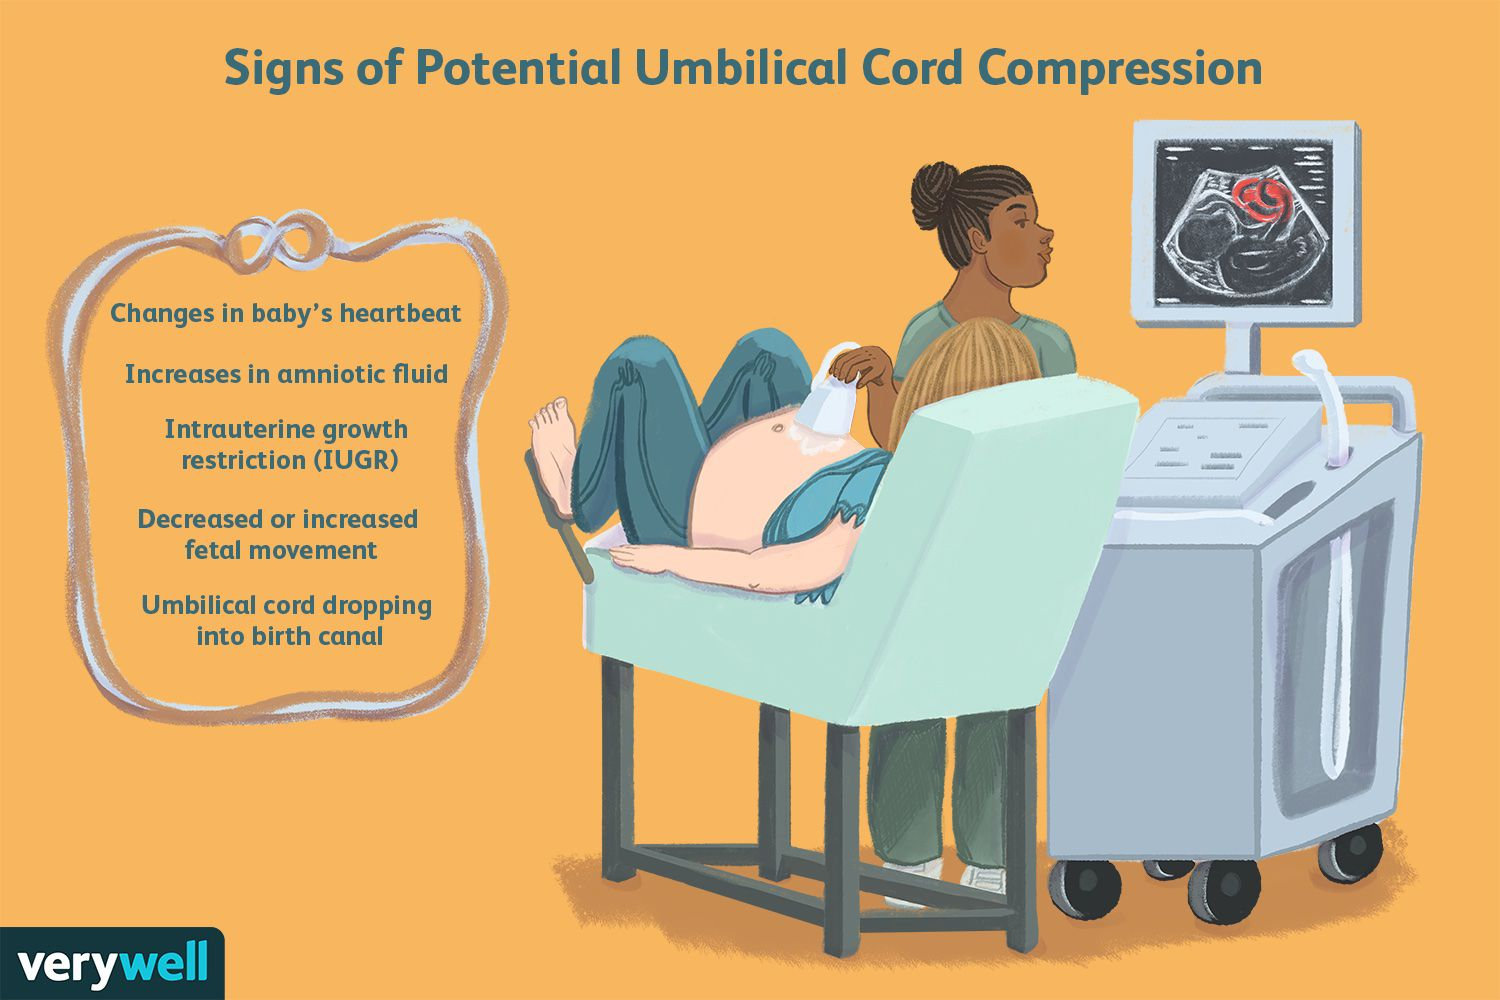 Signs of Potential Umbilical Cord Compression